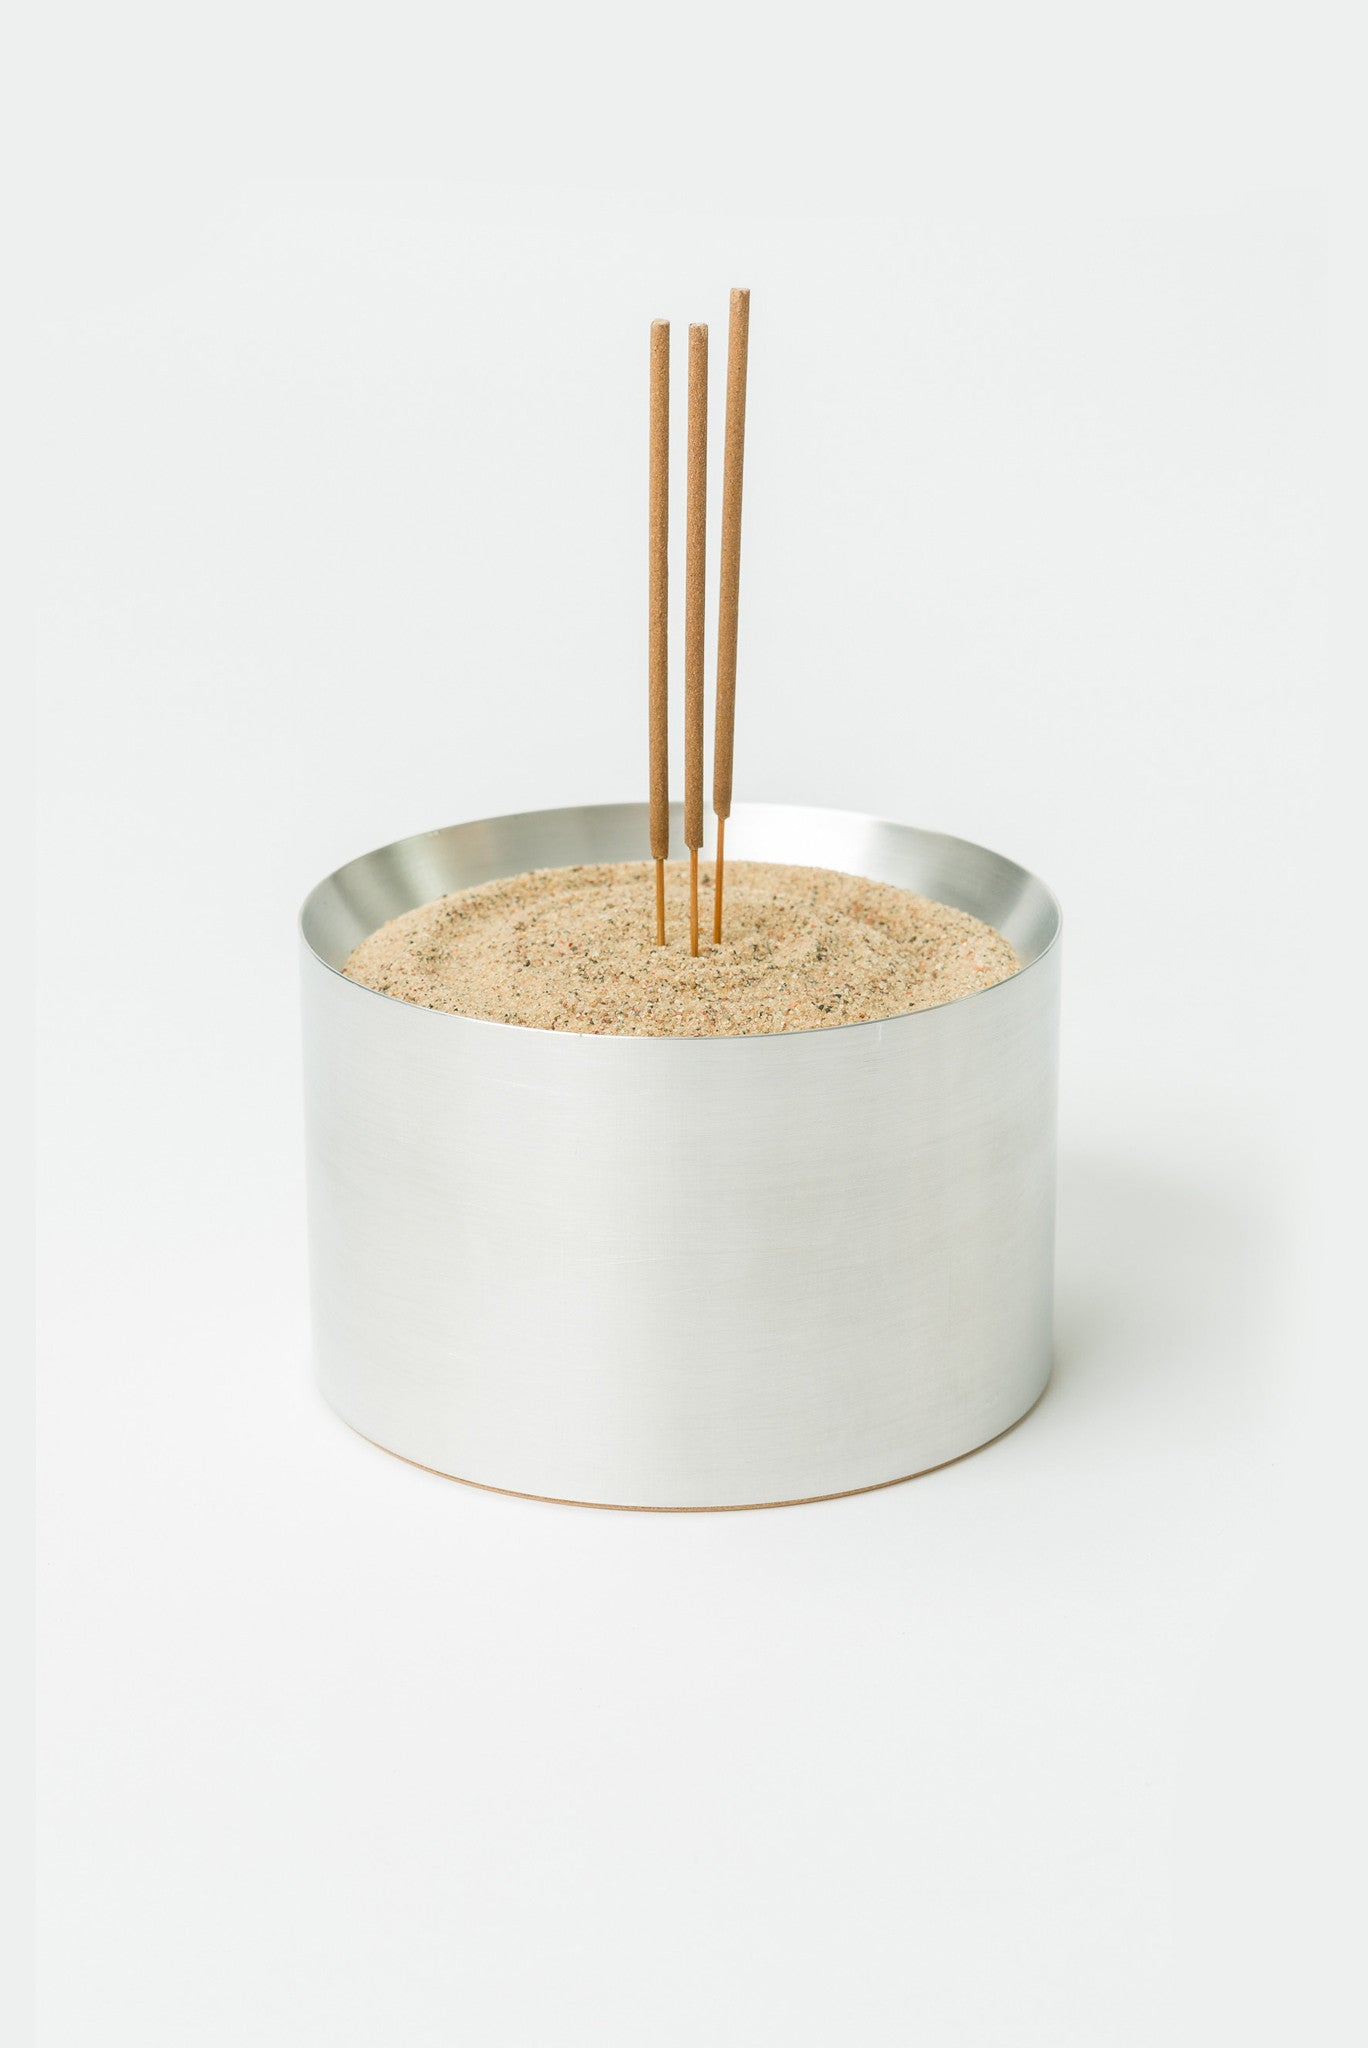 Sand Incense Bowl in Solid Aluminum